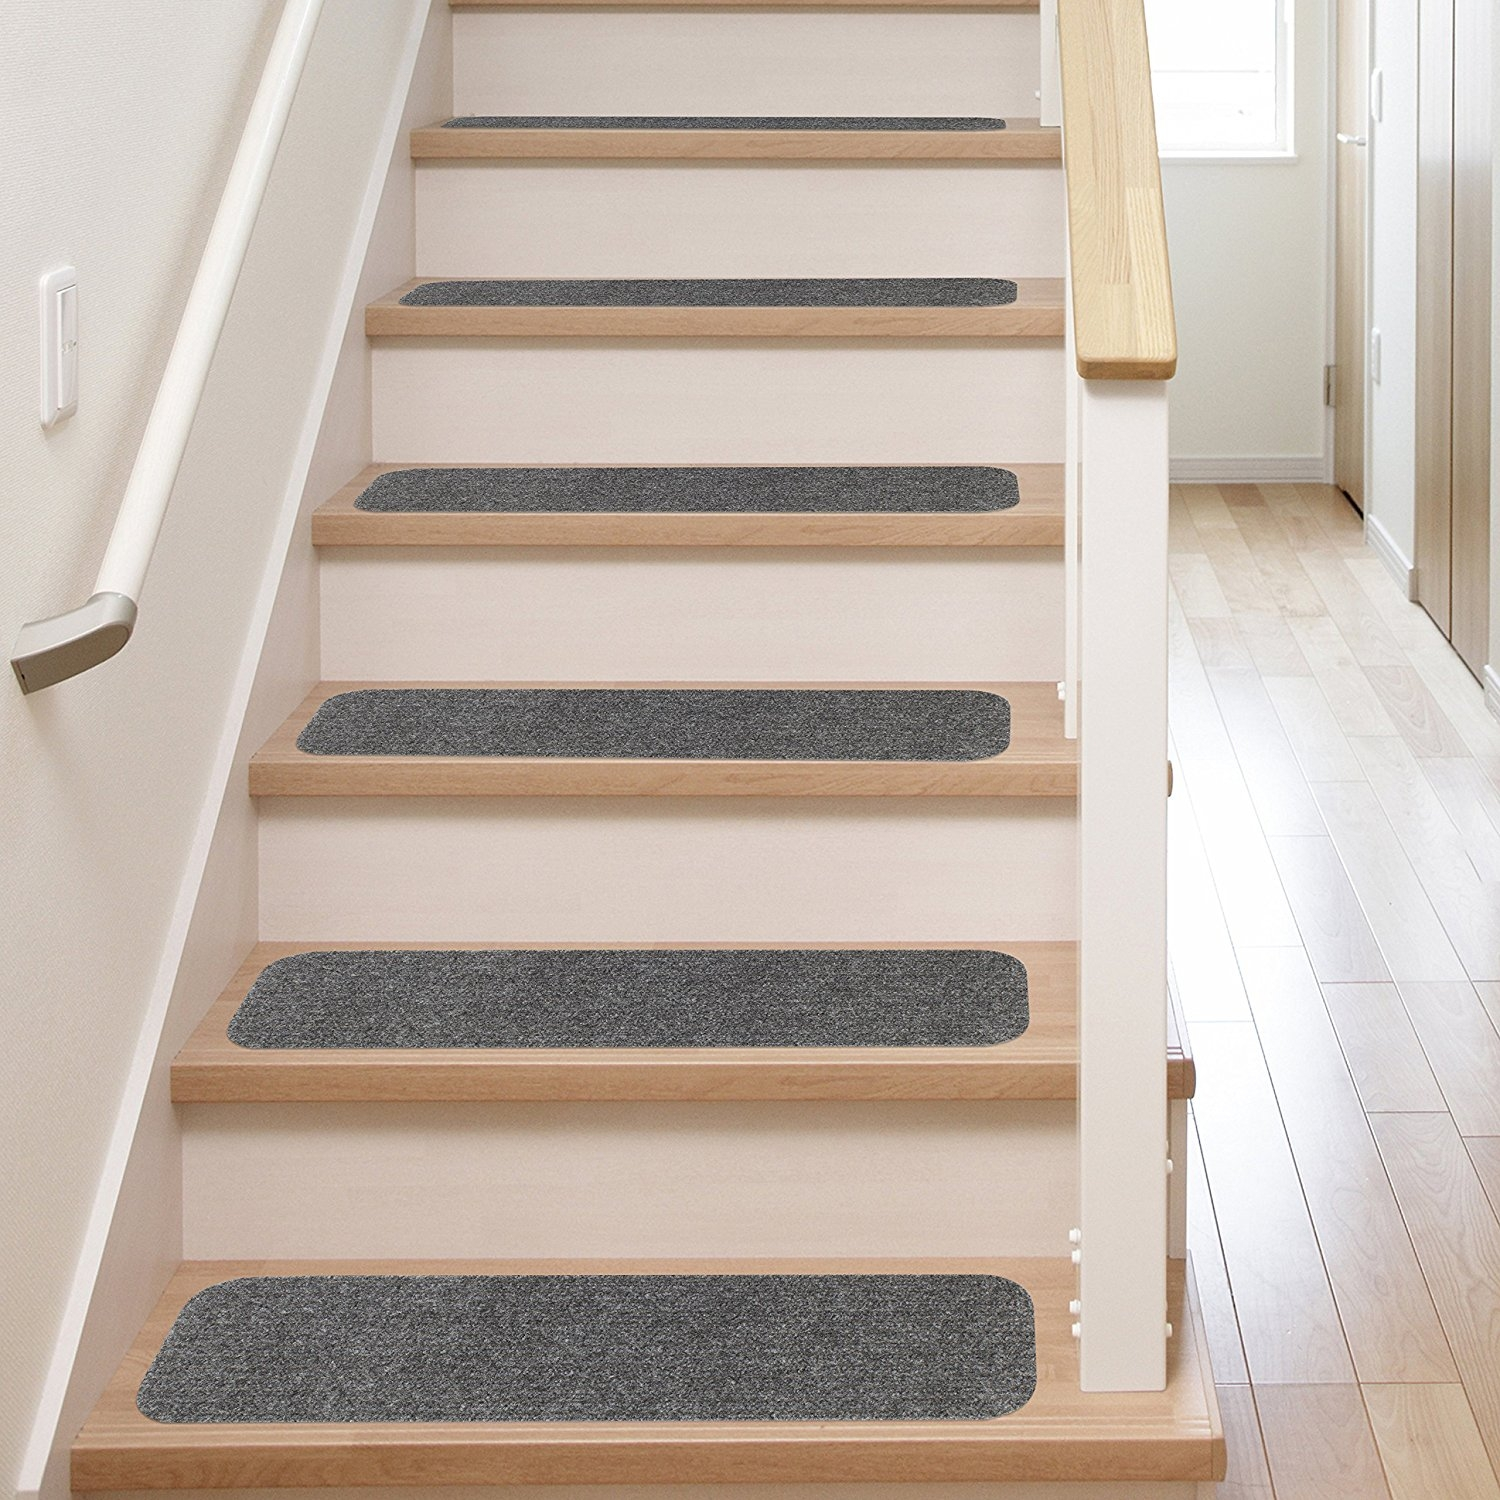 13 Stair Treads Non Slip Carpet Pads Easy Tape Installation Throughout Indoor Stair Tread Mats (Image 1 of 15)